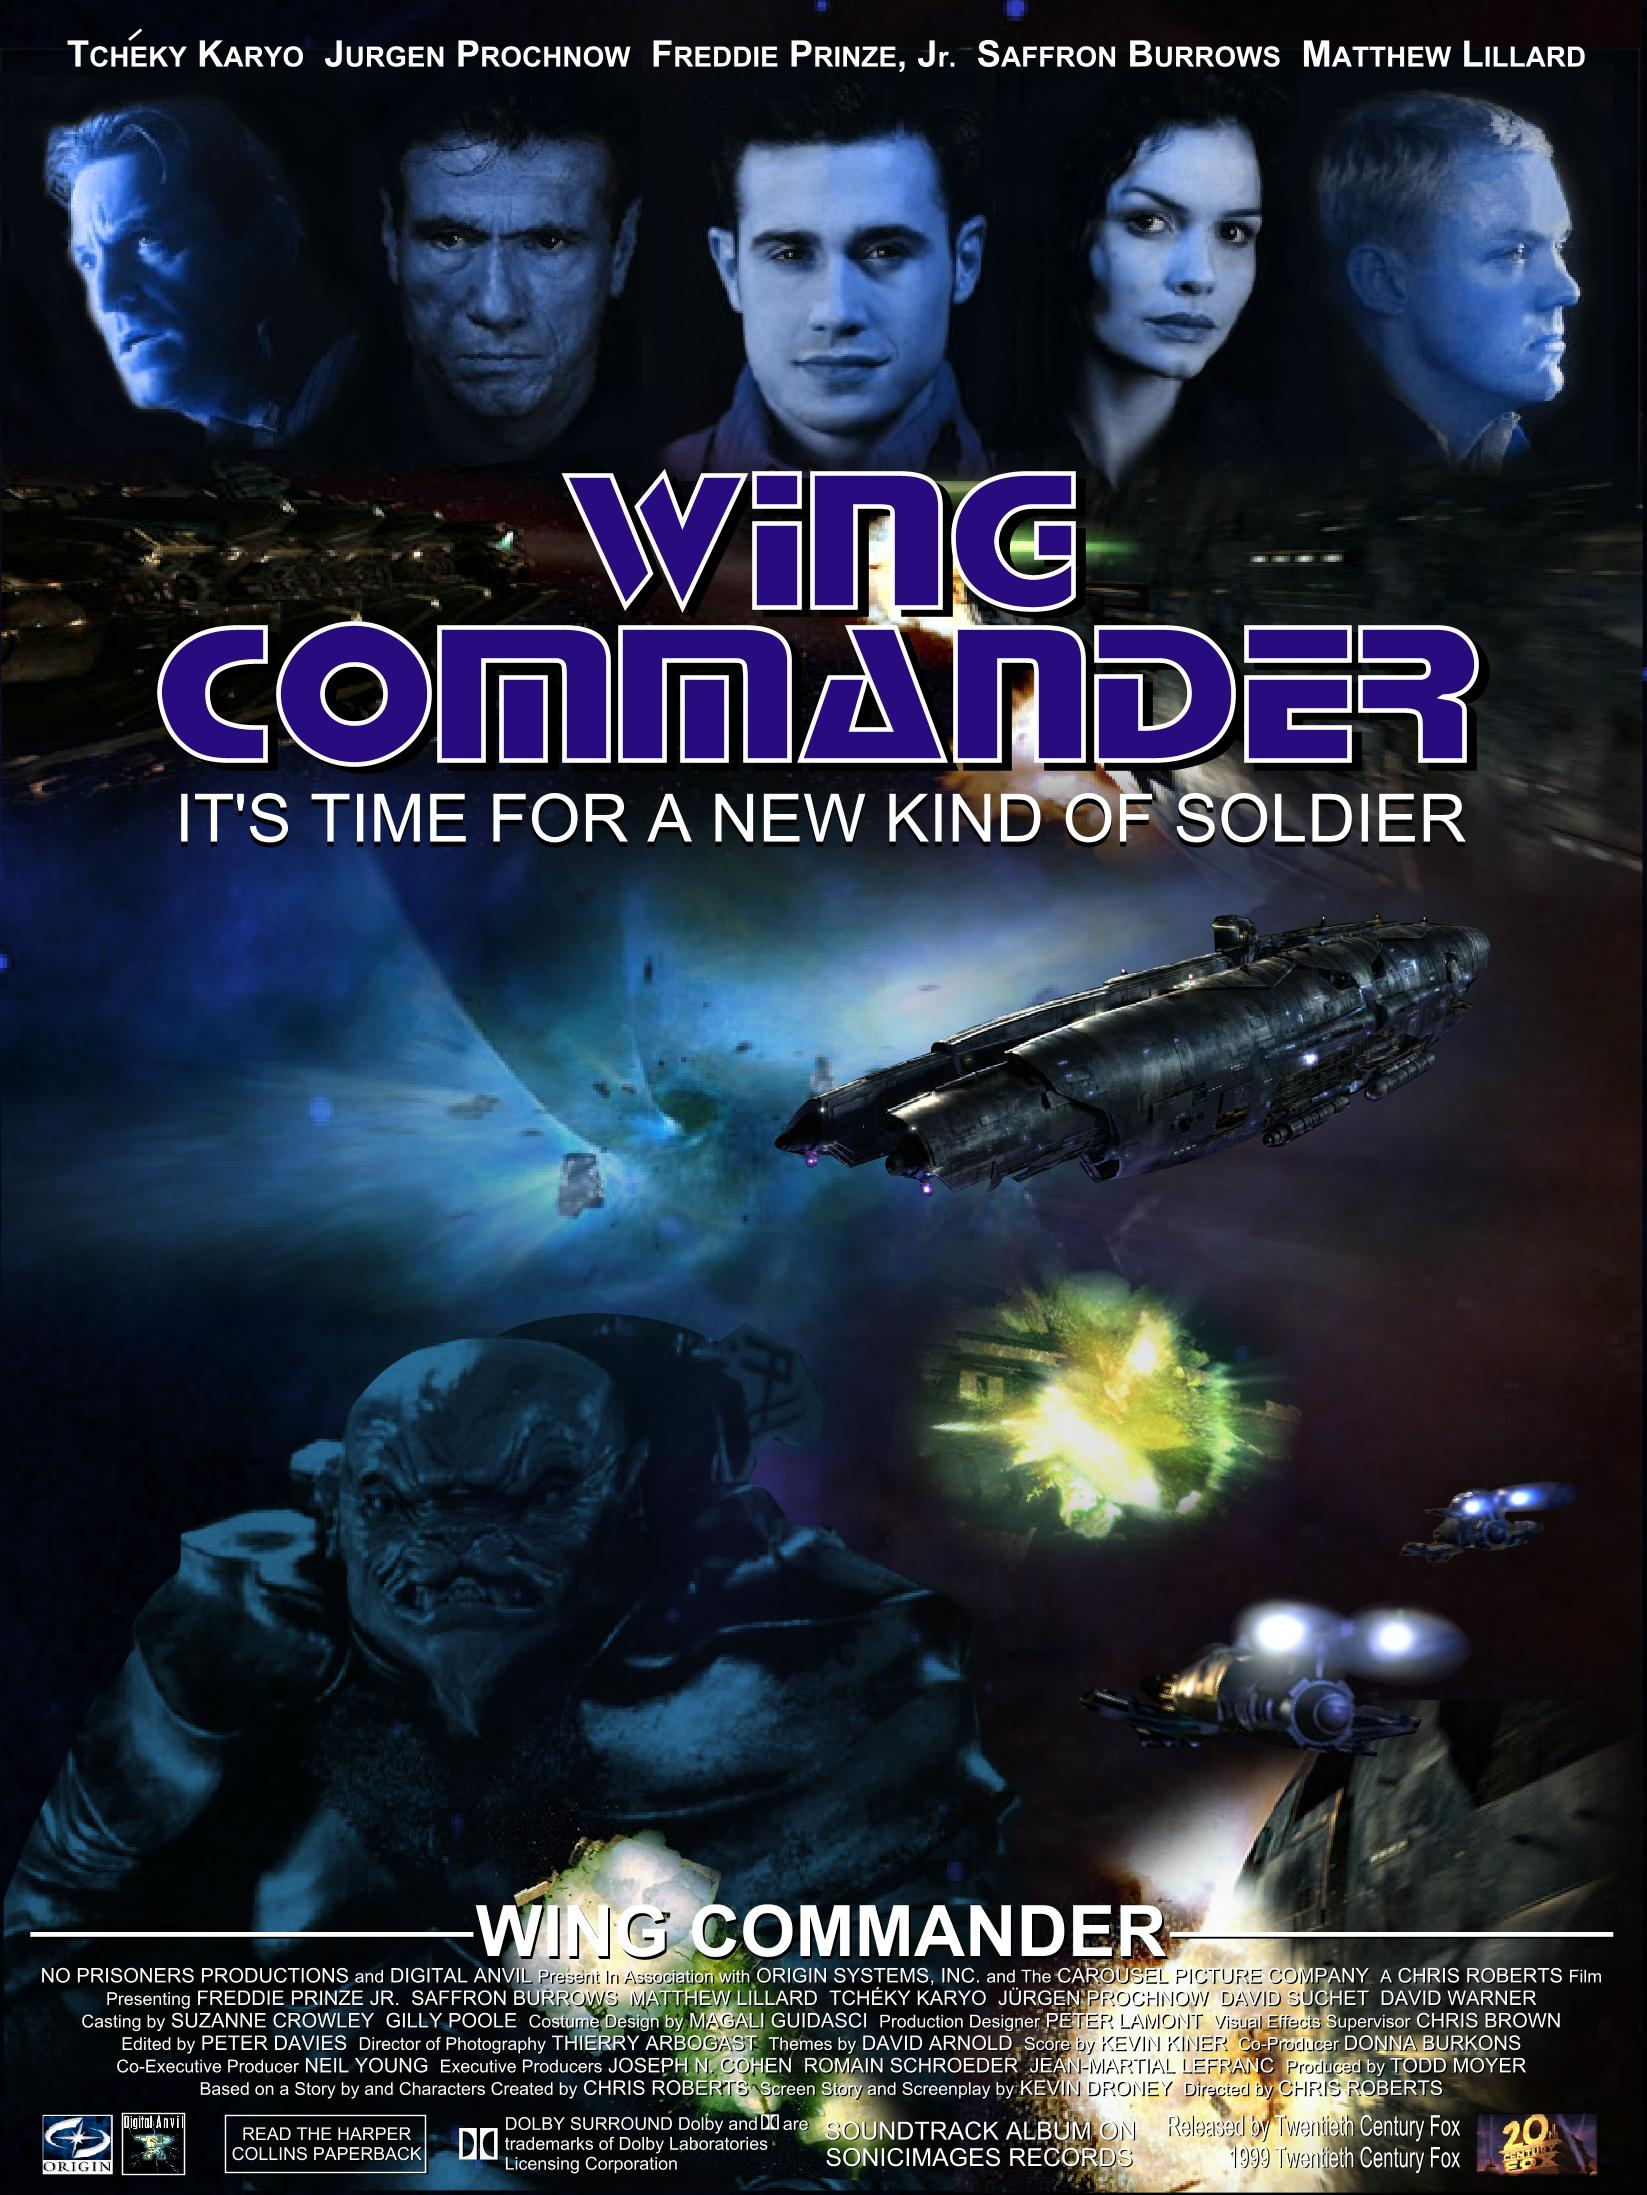 Wing commander 1999 movie for Wing commander